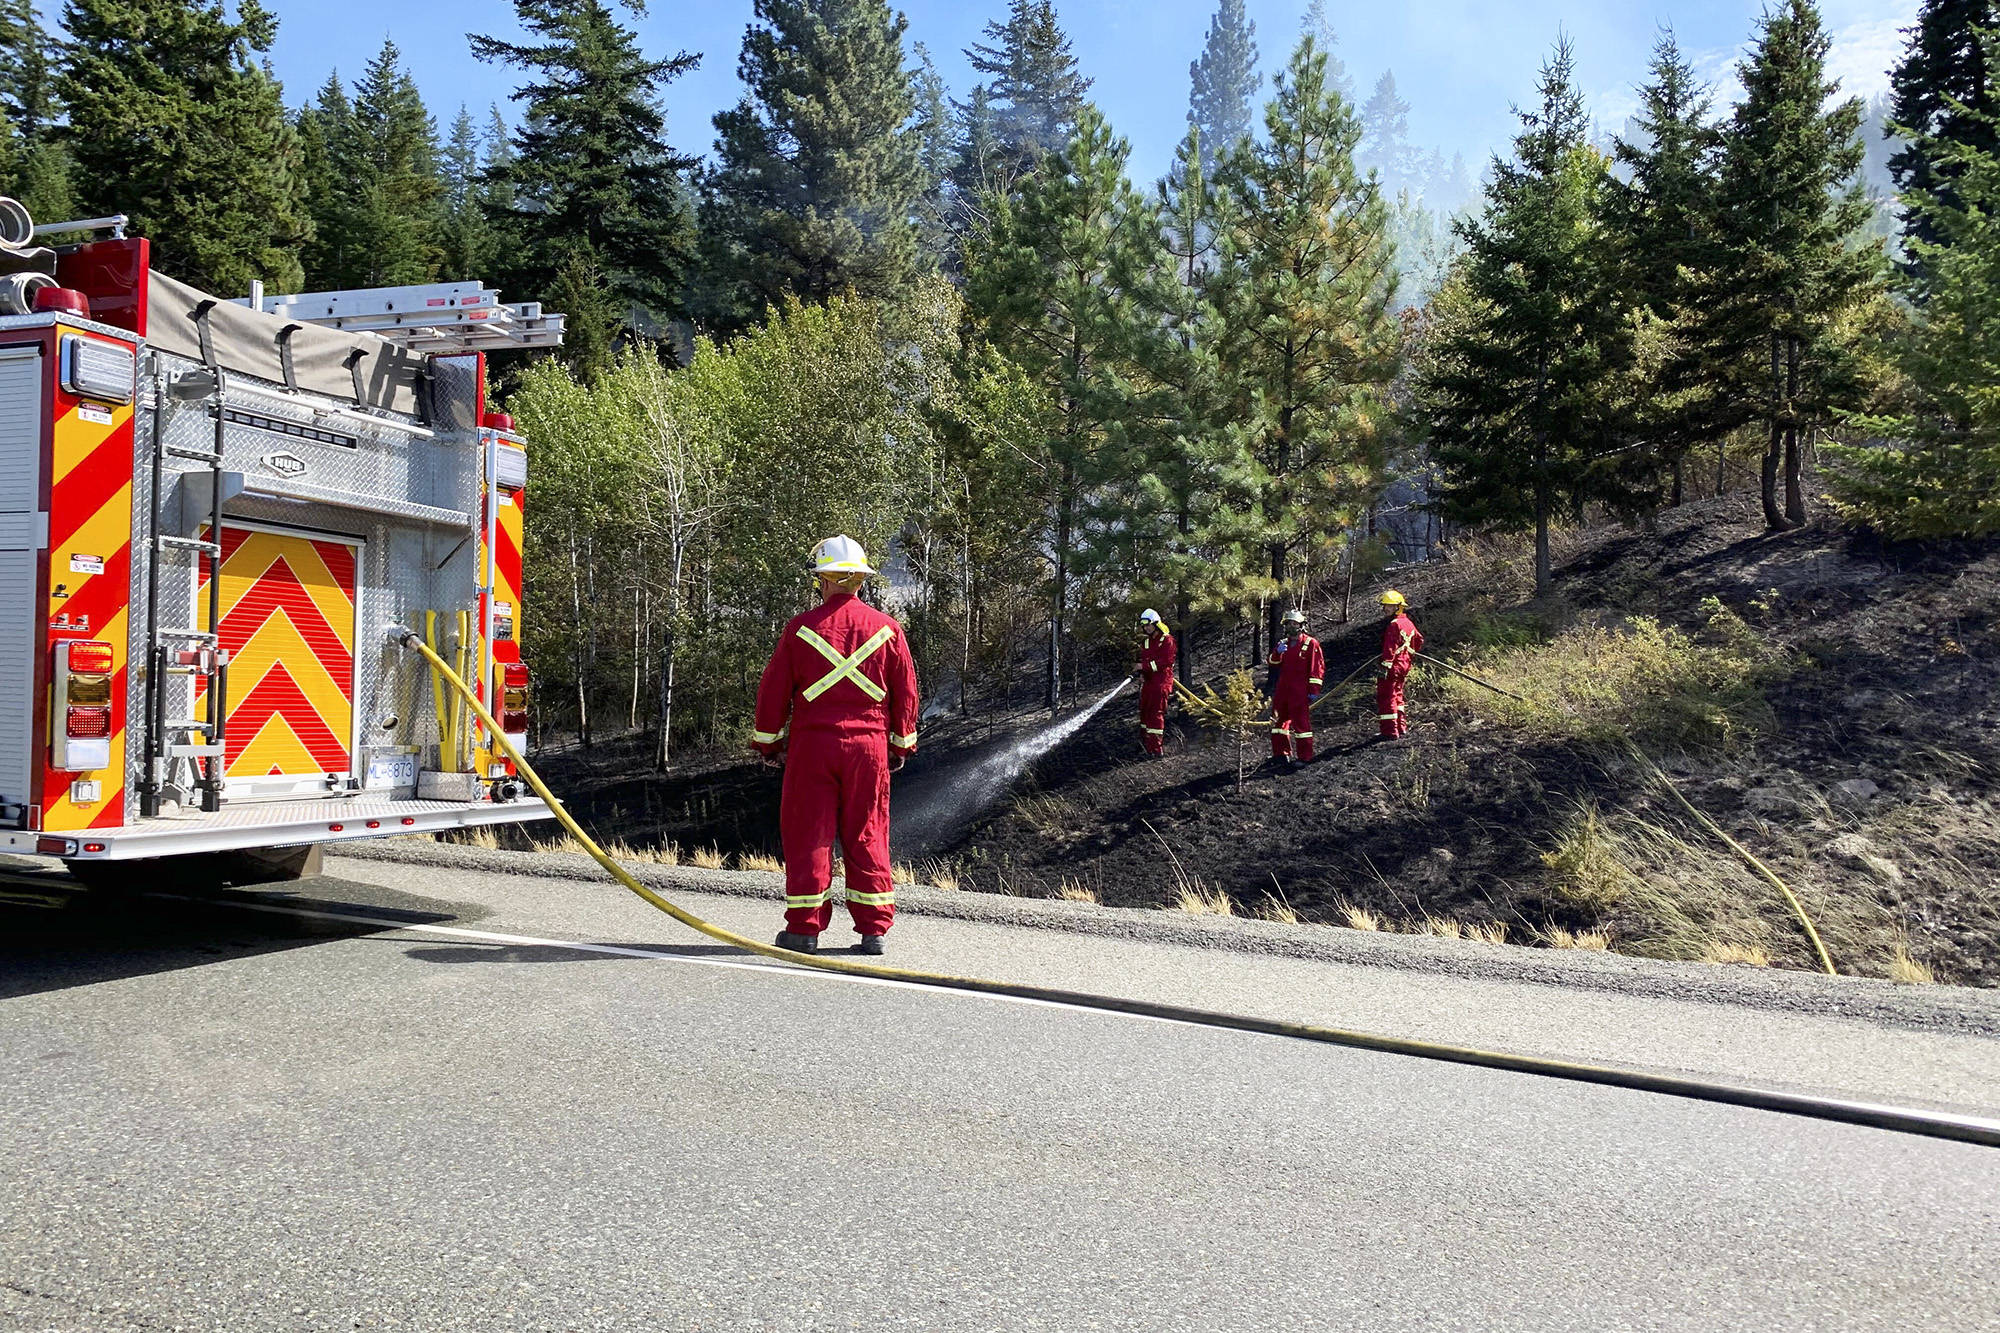 Fire crews from Merritt rushed to extinguish a fire by the Coquihalla Highway on Aug. 22 (Christian Peters Photo)